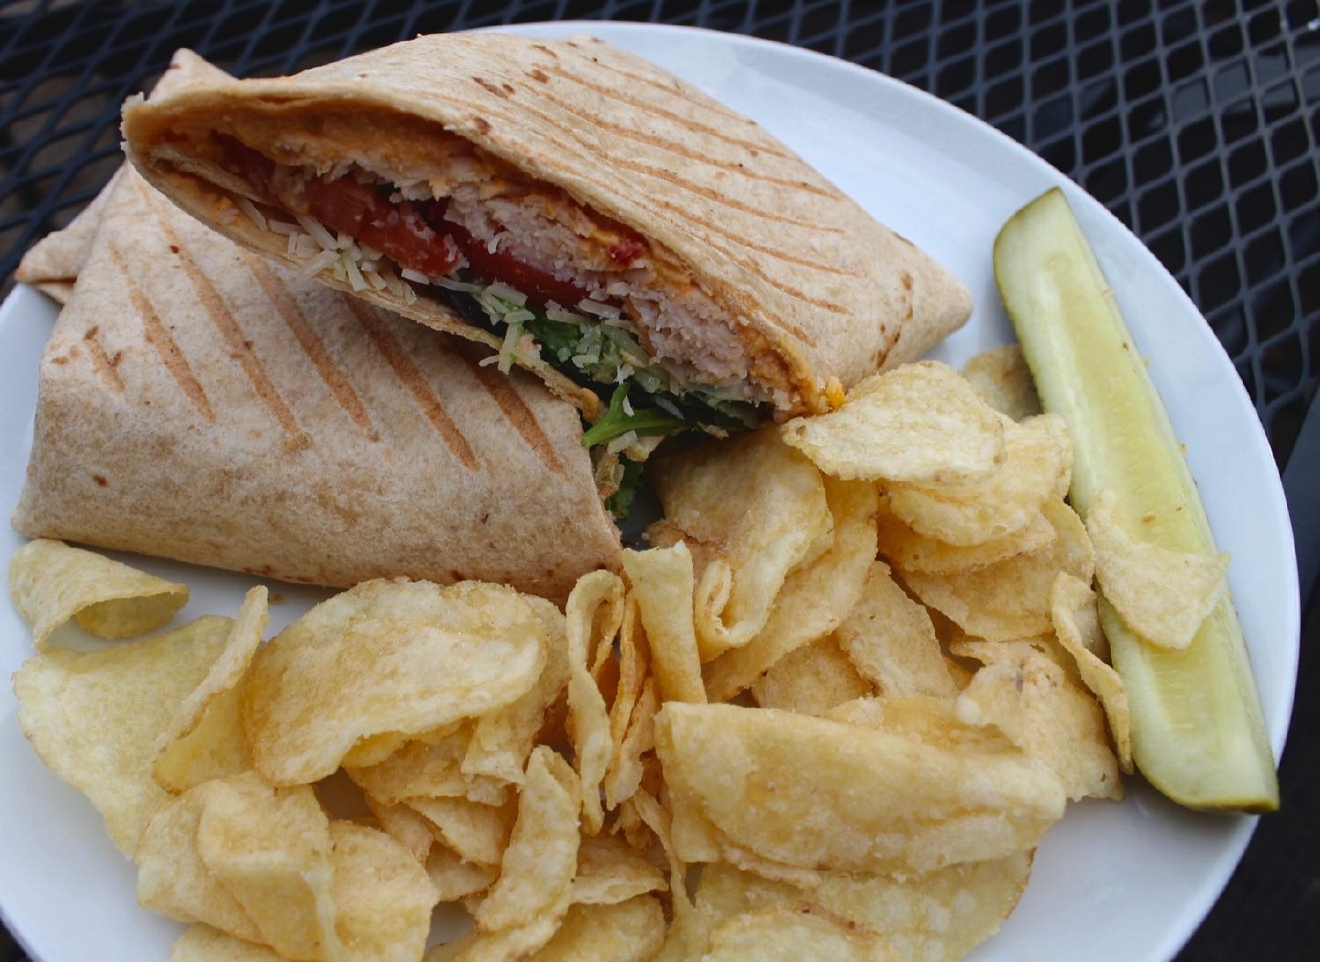 The Chuck Norris: chipped turkey, roasted red pepper hummus, avocado, parmesan, lettuce, tomato on a wheat wrap served with chips and a pickle / Image: Rose Brewington